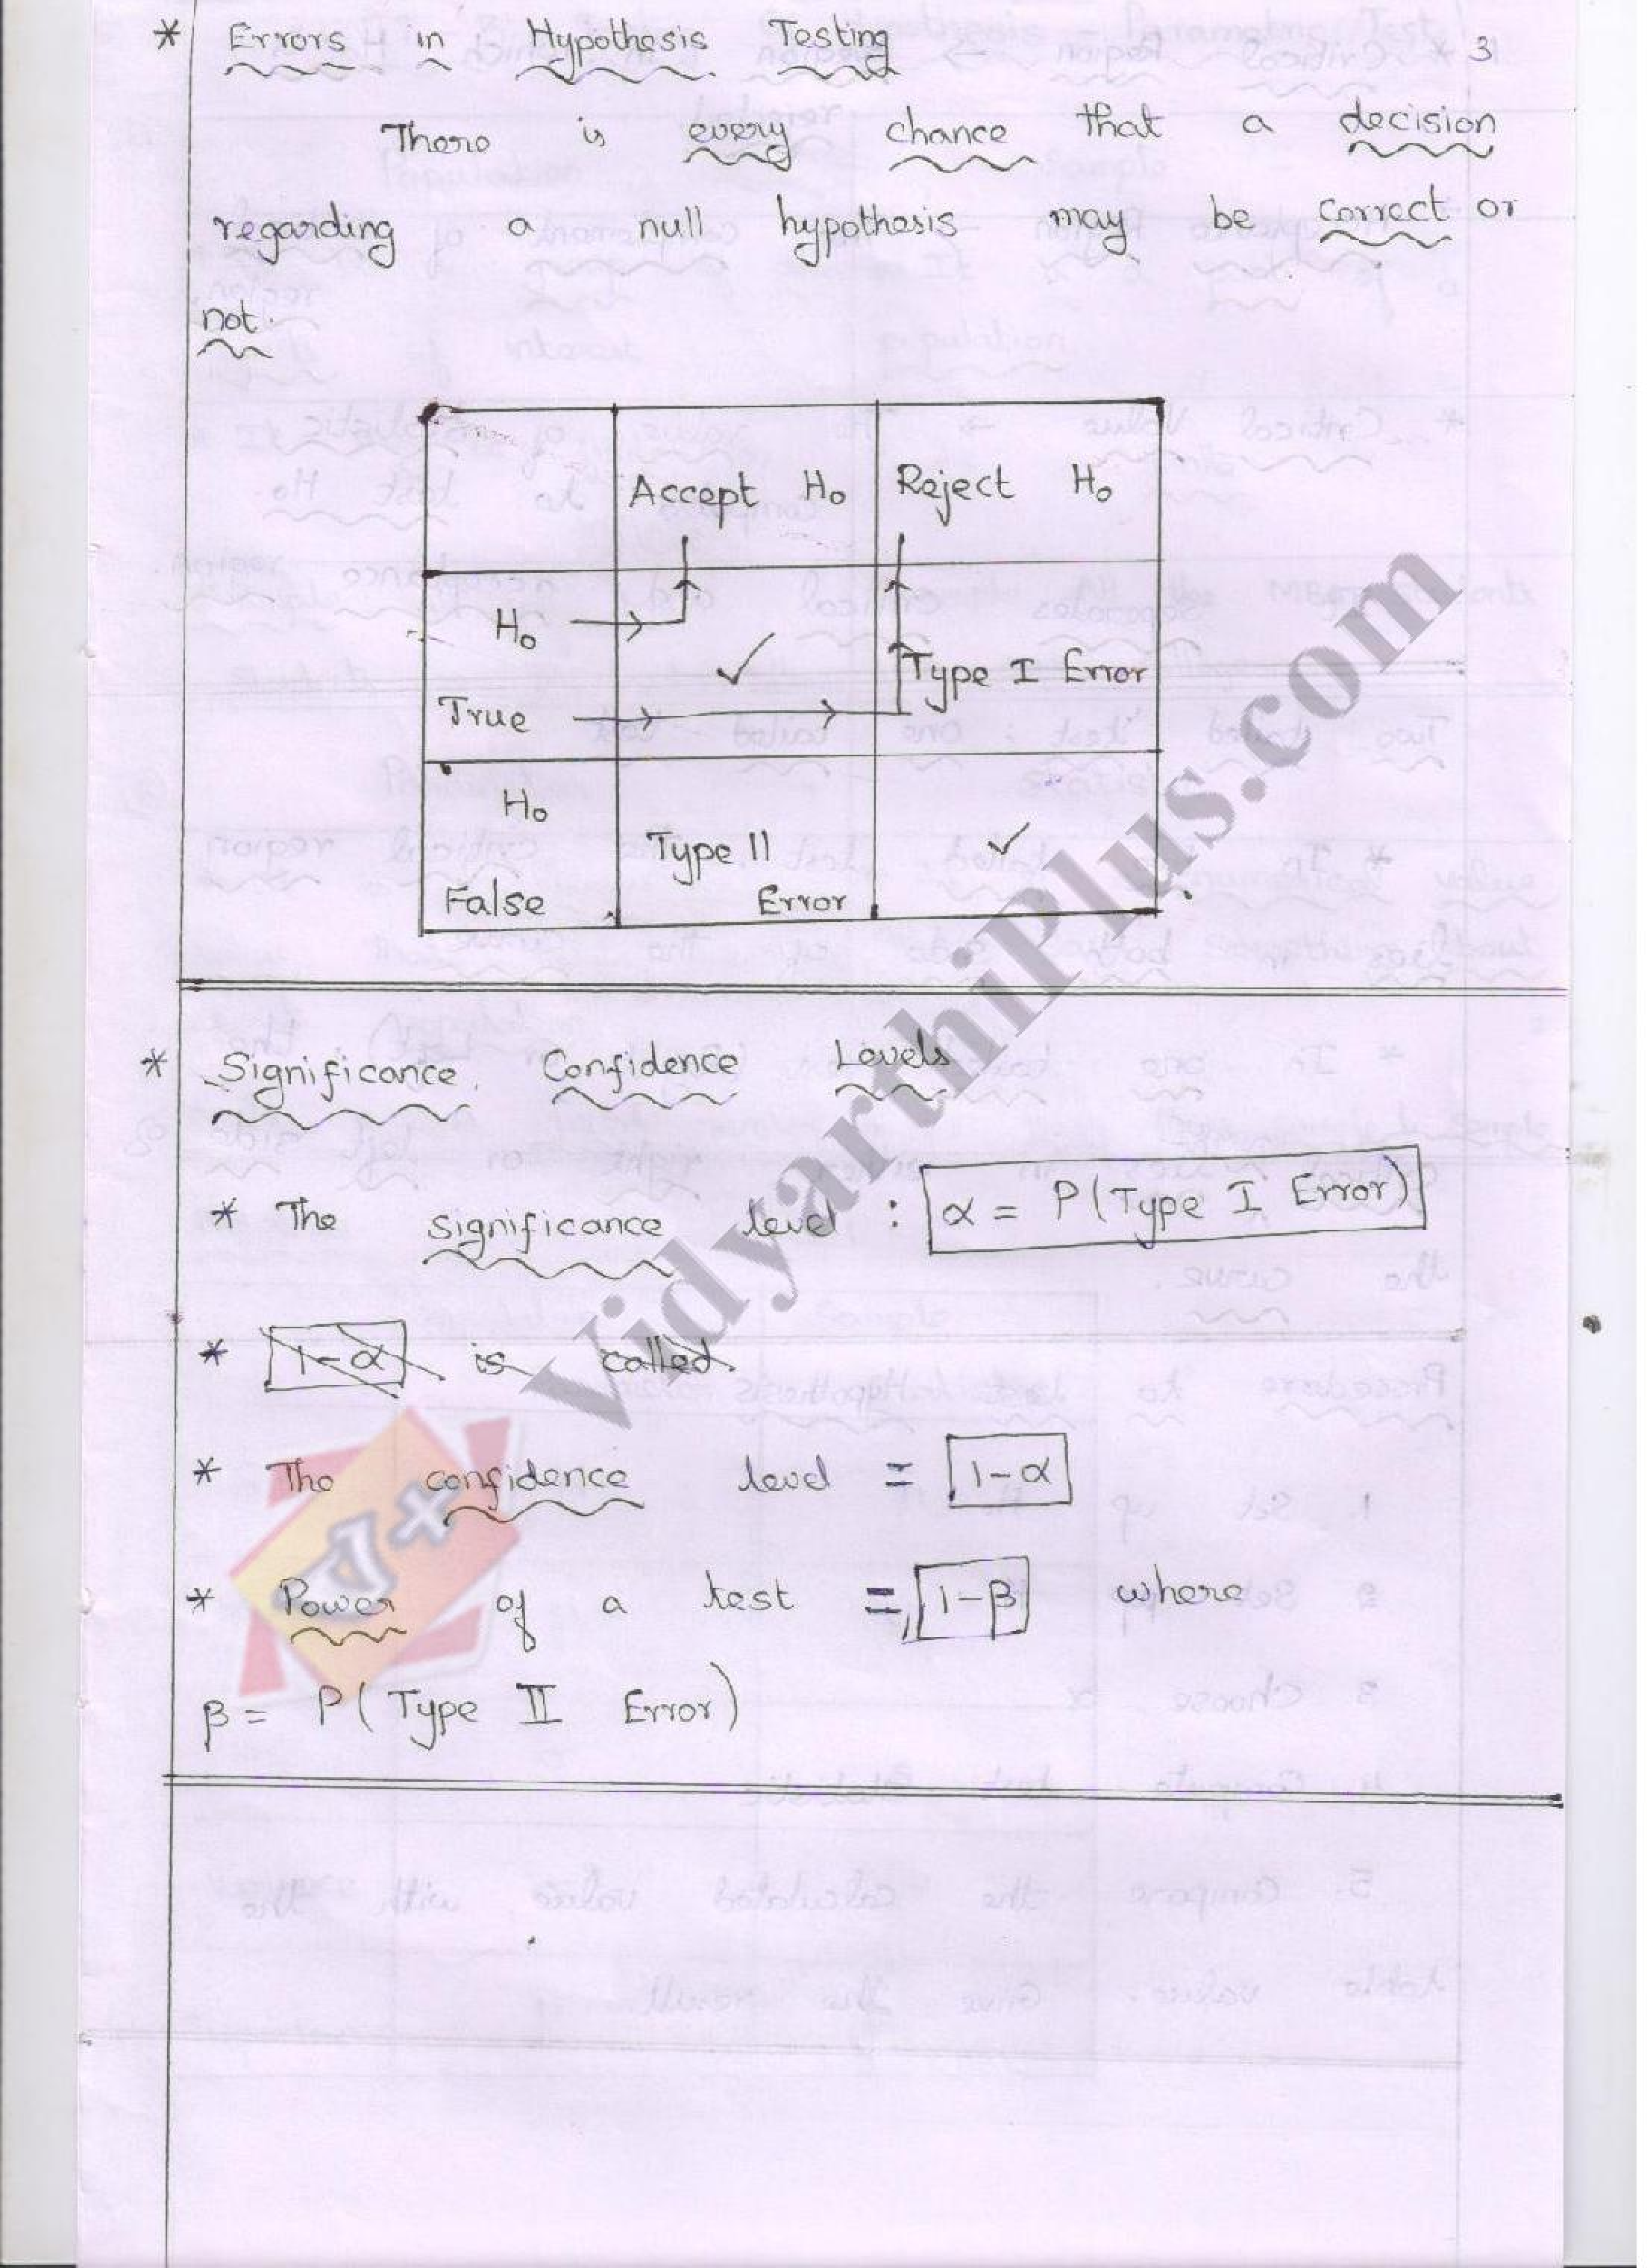 Statistics And Numerical Methods Premium Lecture Notes - Srini Edition